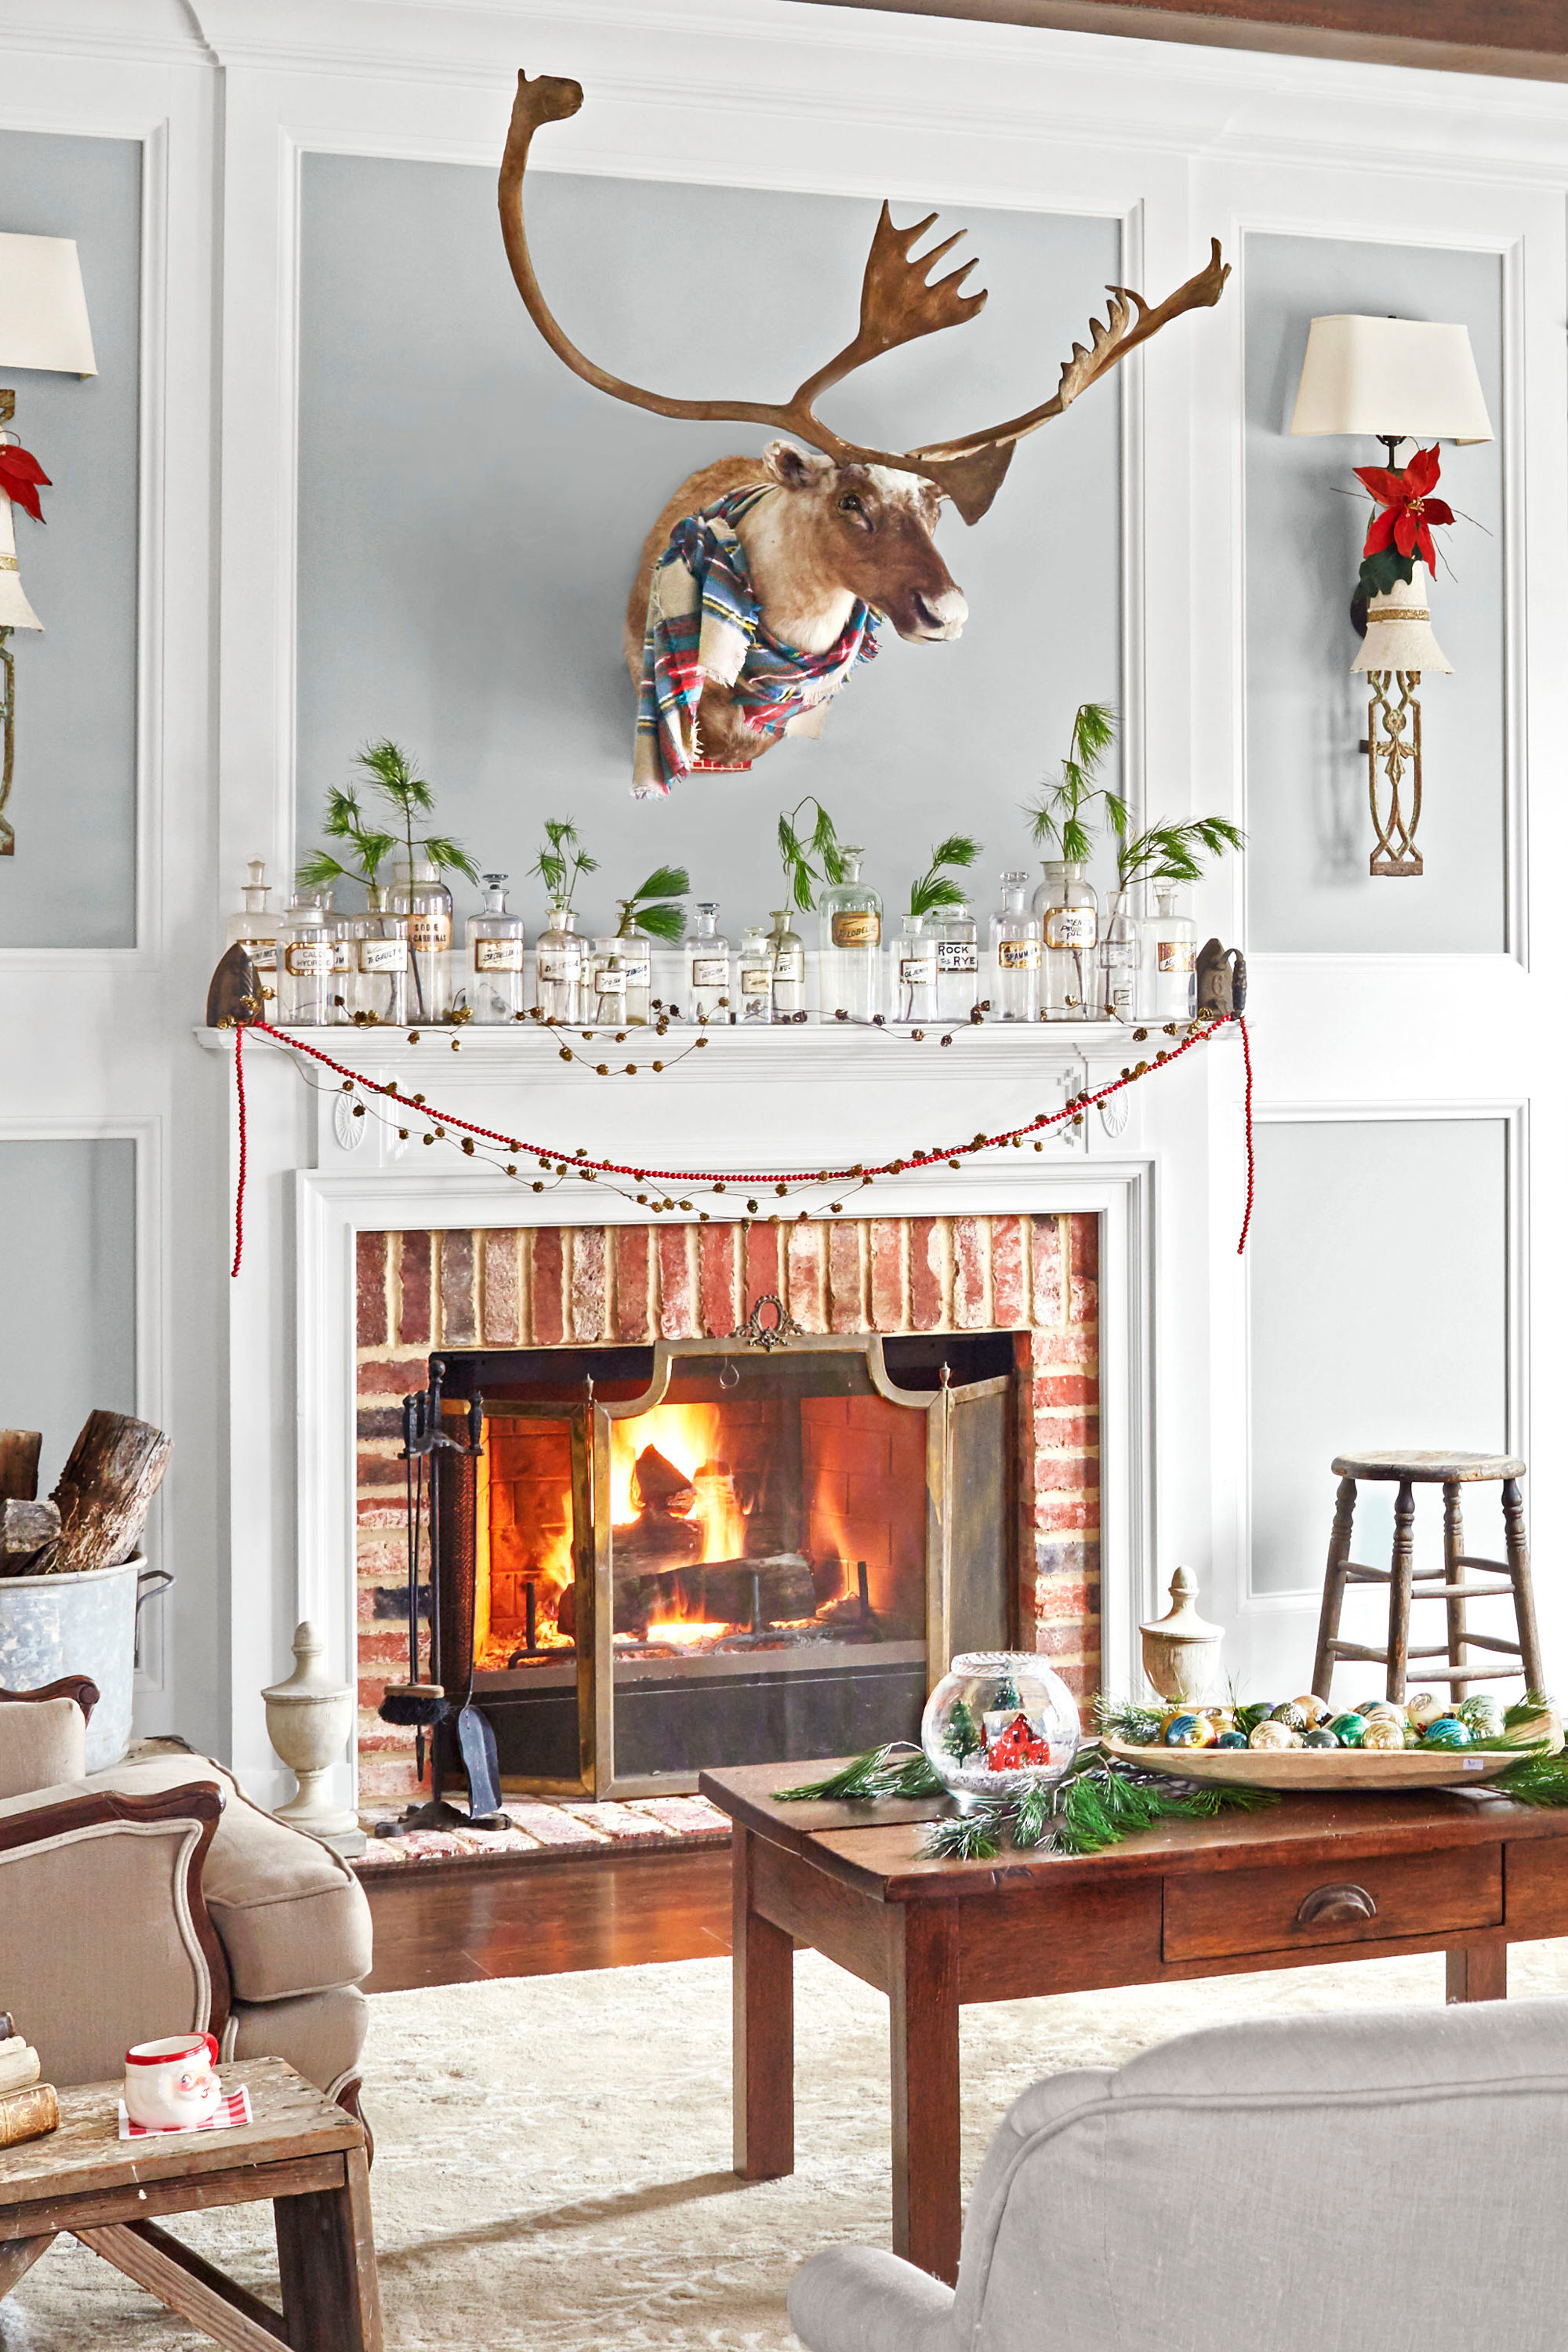 Design Mantel Decorating Ideas 38 christmas mantel decorations ideas for holiday fireplace decorating